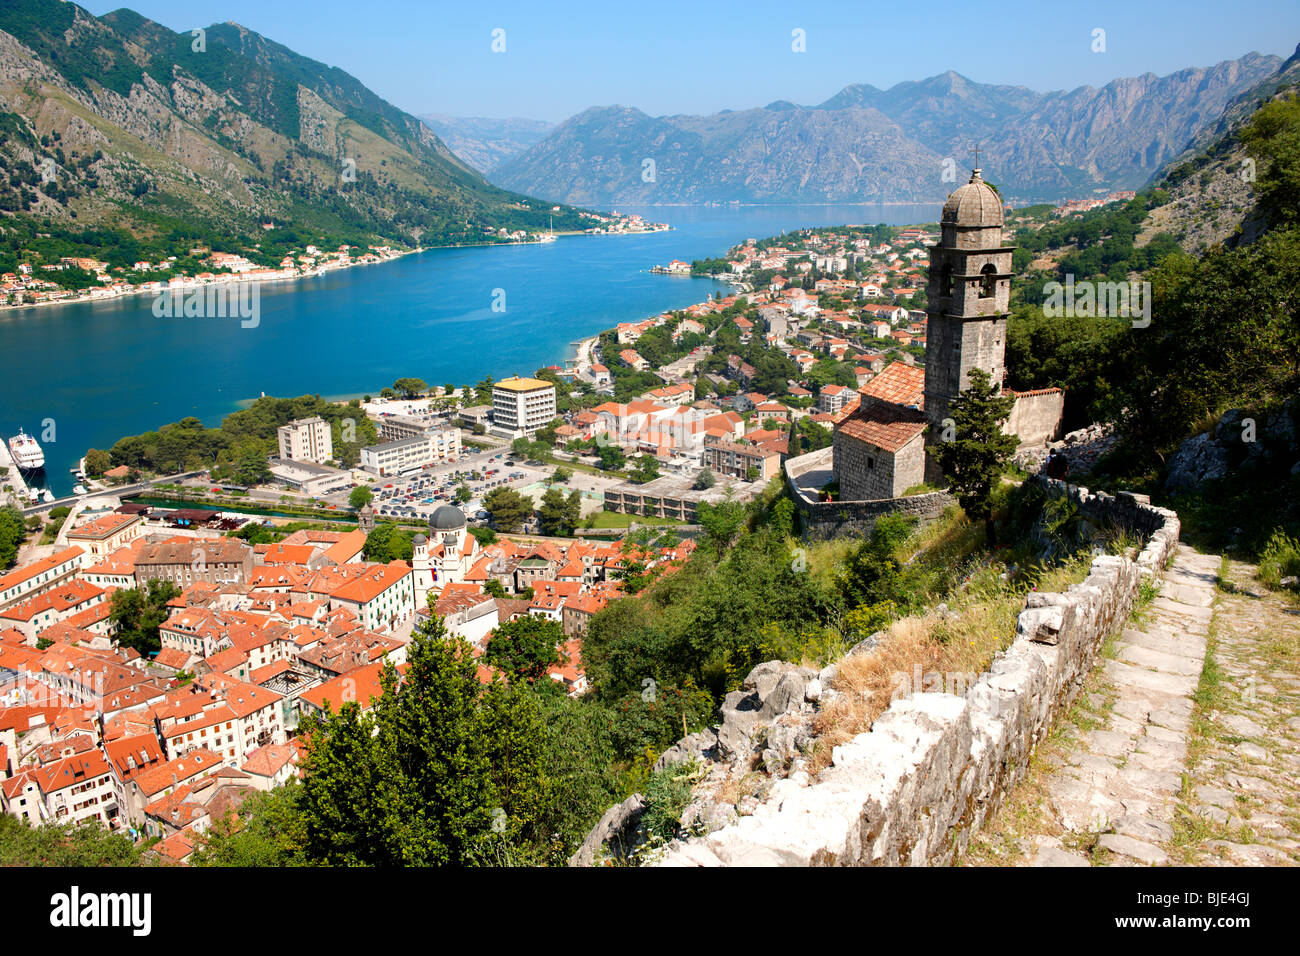 Kotor bay from the chuch of our Laday of Health ( Crkva Gospe od zdravja - 15th century) above Kotor town, Montenegro - Stock Image